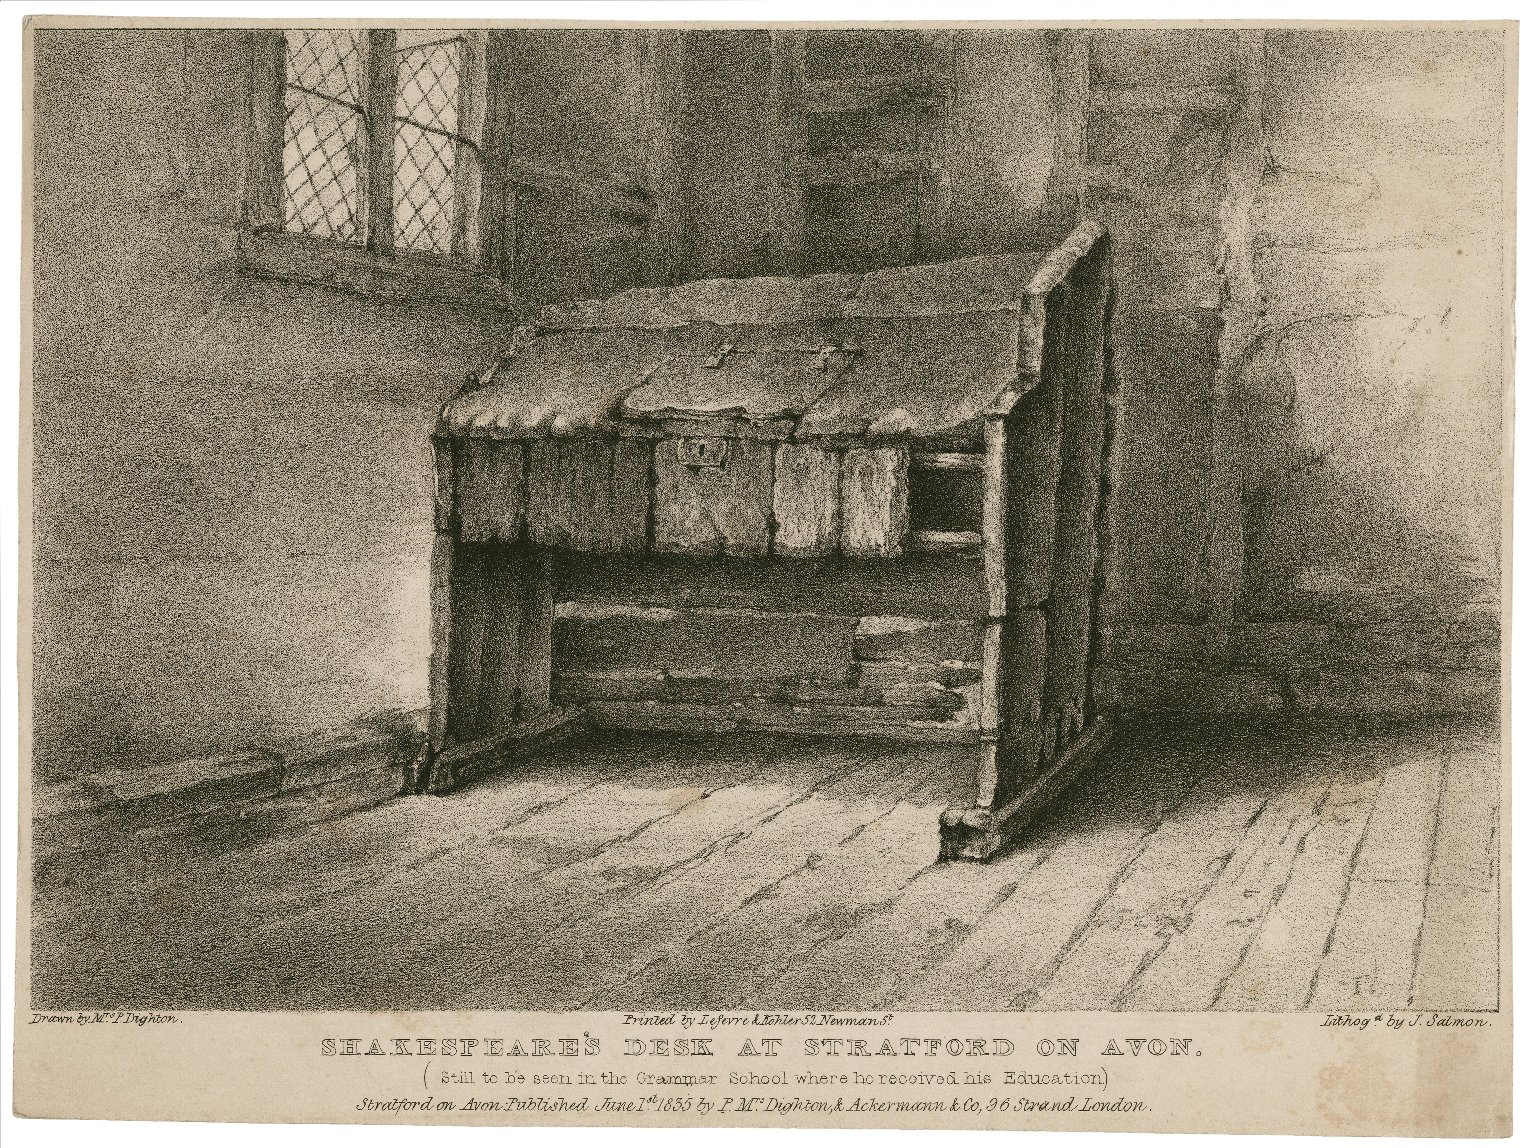 Shakespeare's desk at Stratford on Avon (still to be seen in the grammar school where he received his education) [graphic] / drawn by Mrs. P. Dighton ; lithogd. by J. Salmon.